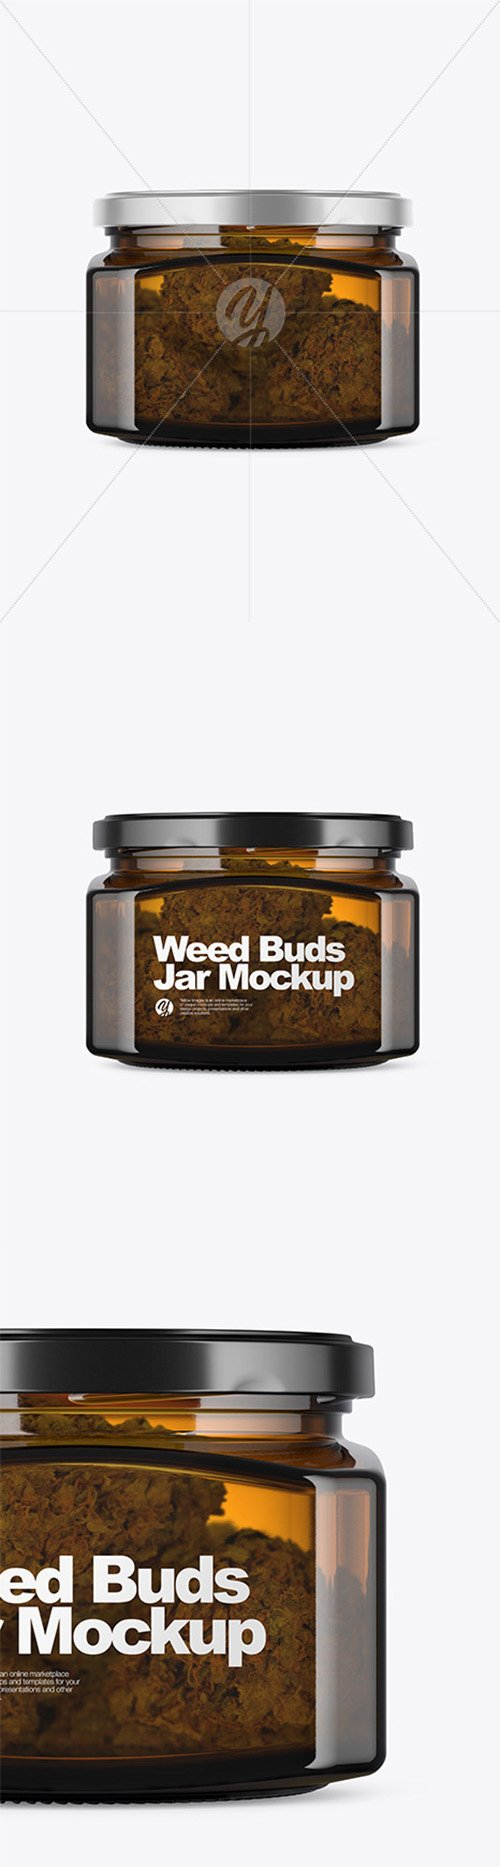 Square Amber Glass Jar with Weed Buds Mockup 52528 TIF